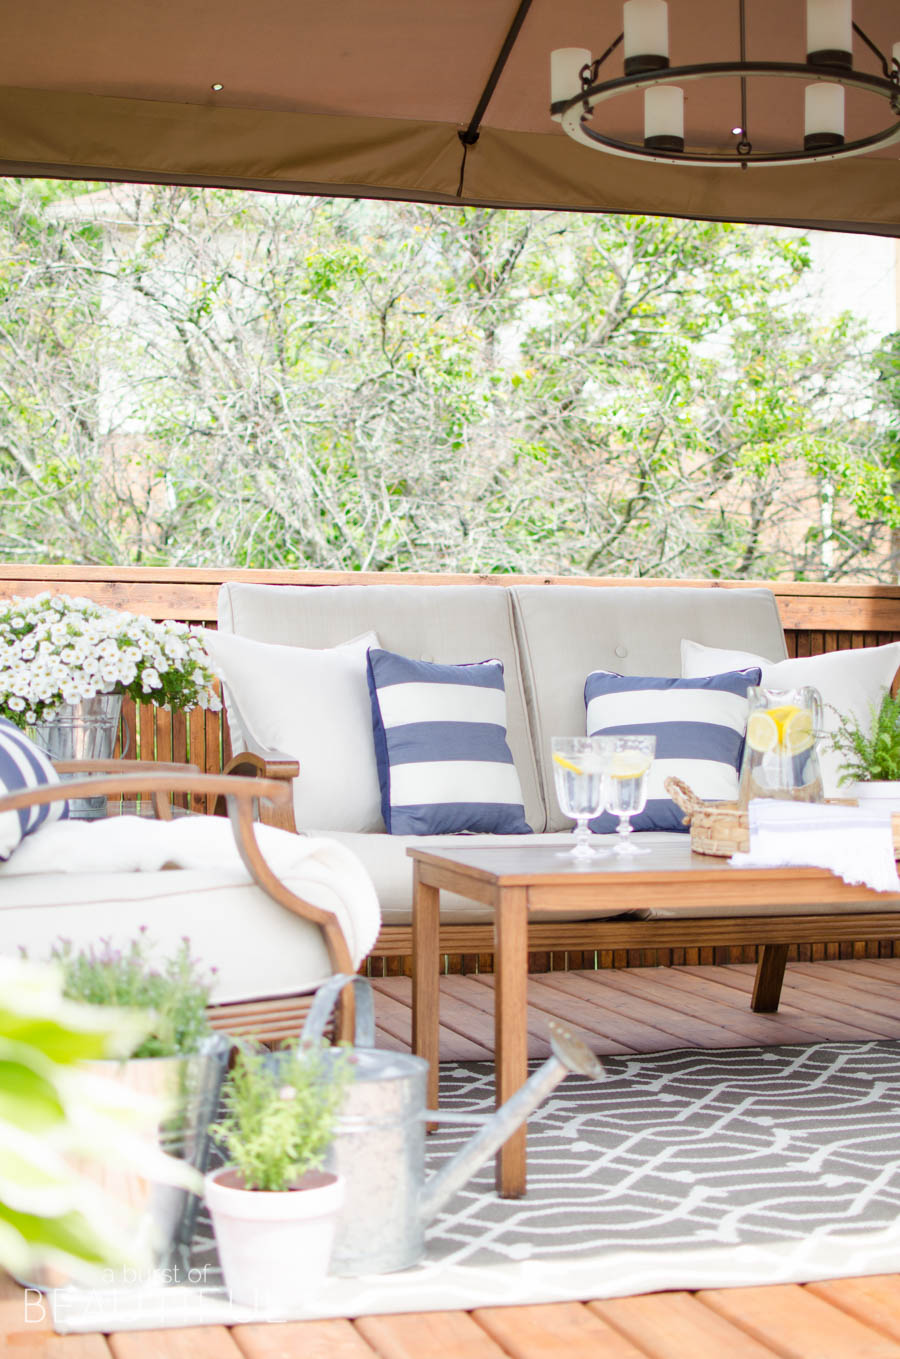 Tips for creating a cozy outdoor living space video a for Cost of outdoor living space